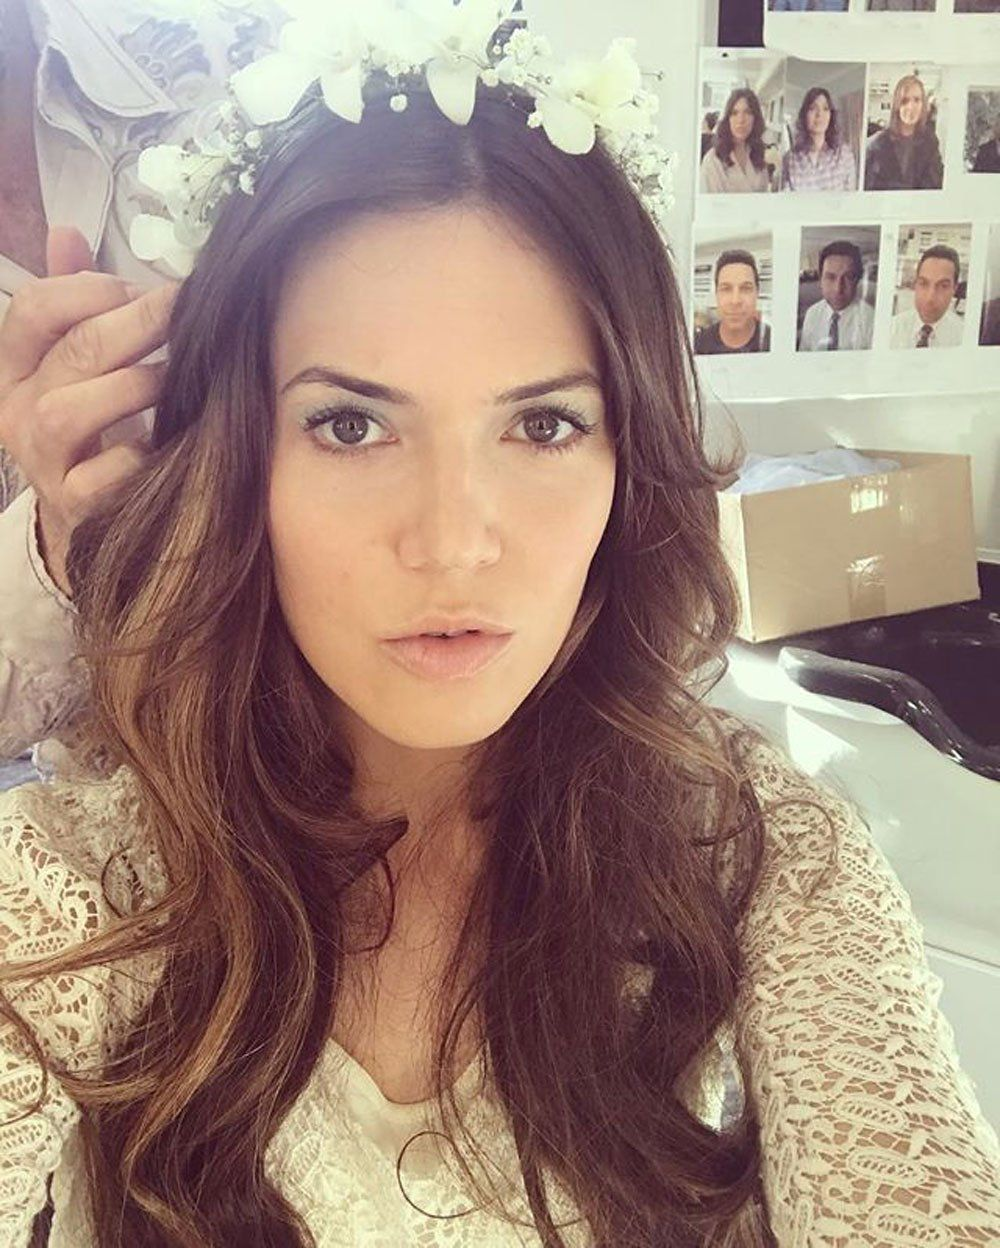 Does Mandy Moore S This Is Us Instagram Reveal Crucial Storyline Clues Mandy Moore Hair Wedding Hair Beauty Hair Styles